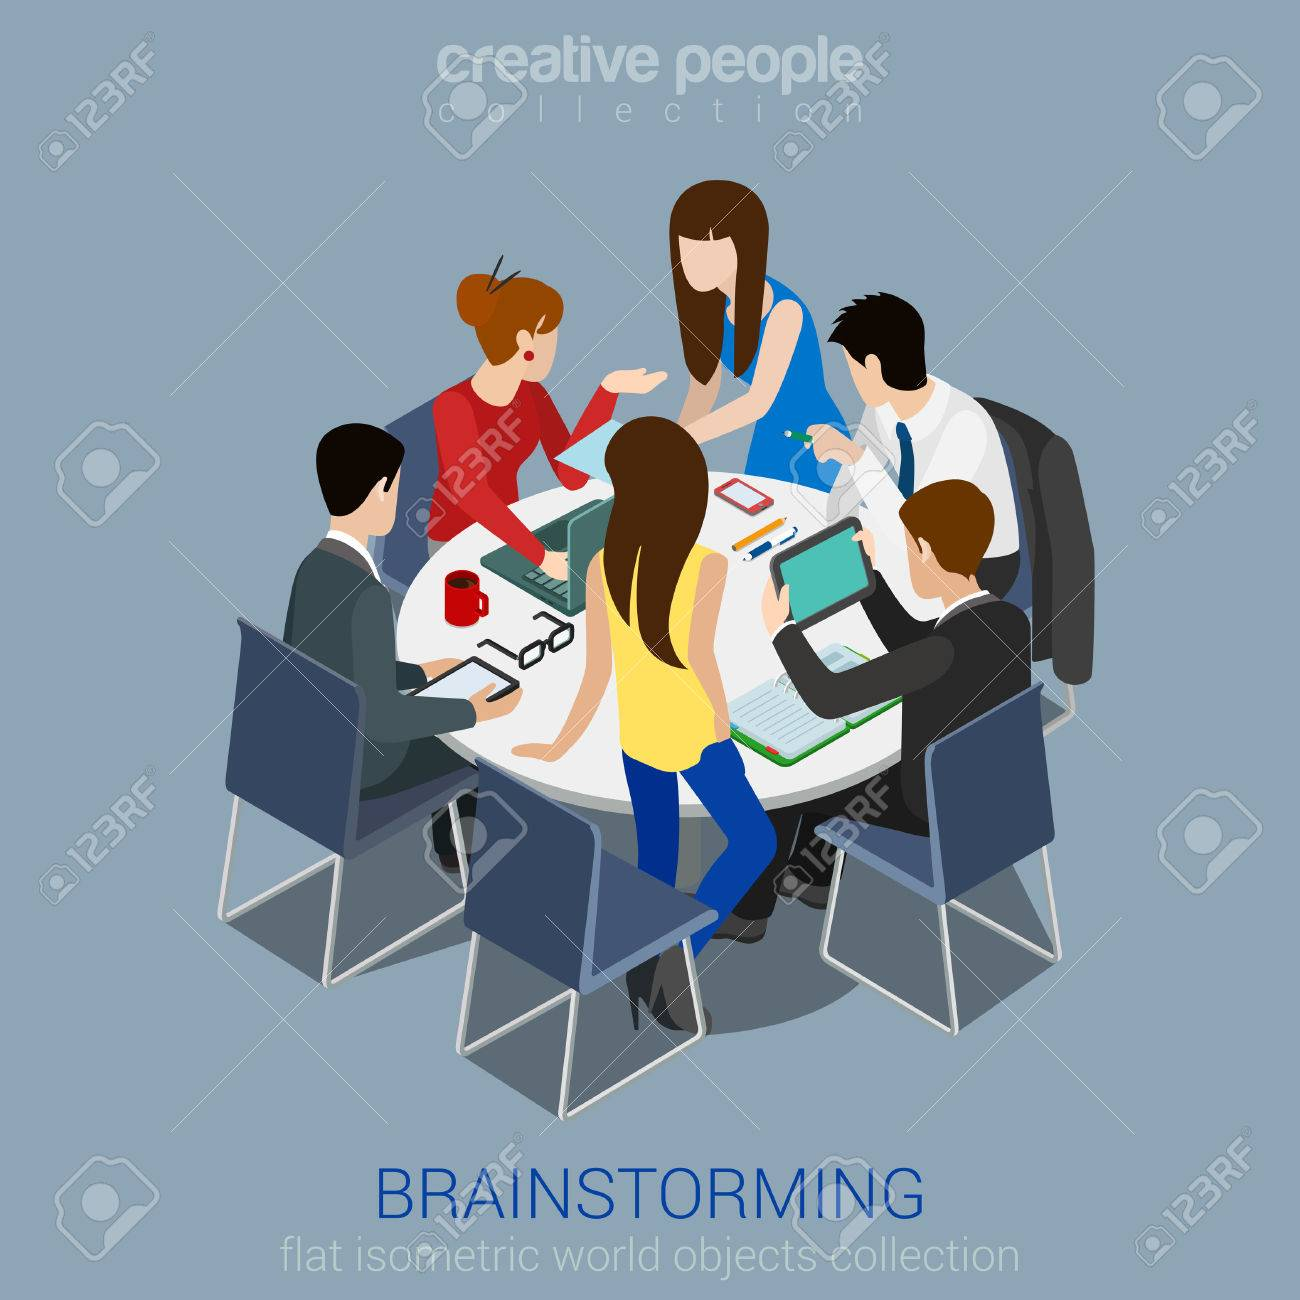 Brainstorming creative team idea discussion people flat 3d web isometric infographic concept vector. Teamwork staff around table laptop chief art director designer programmer. Stock Vector - 54642388